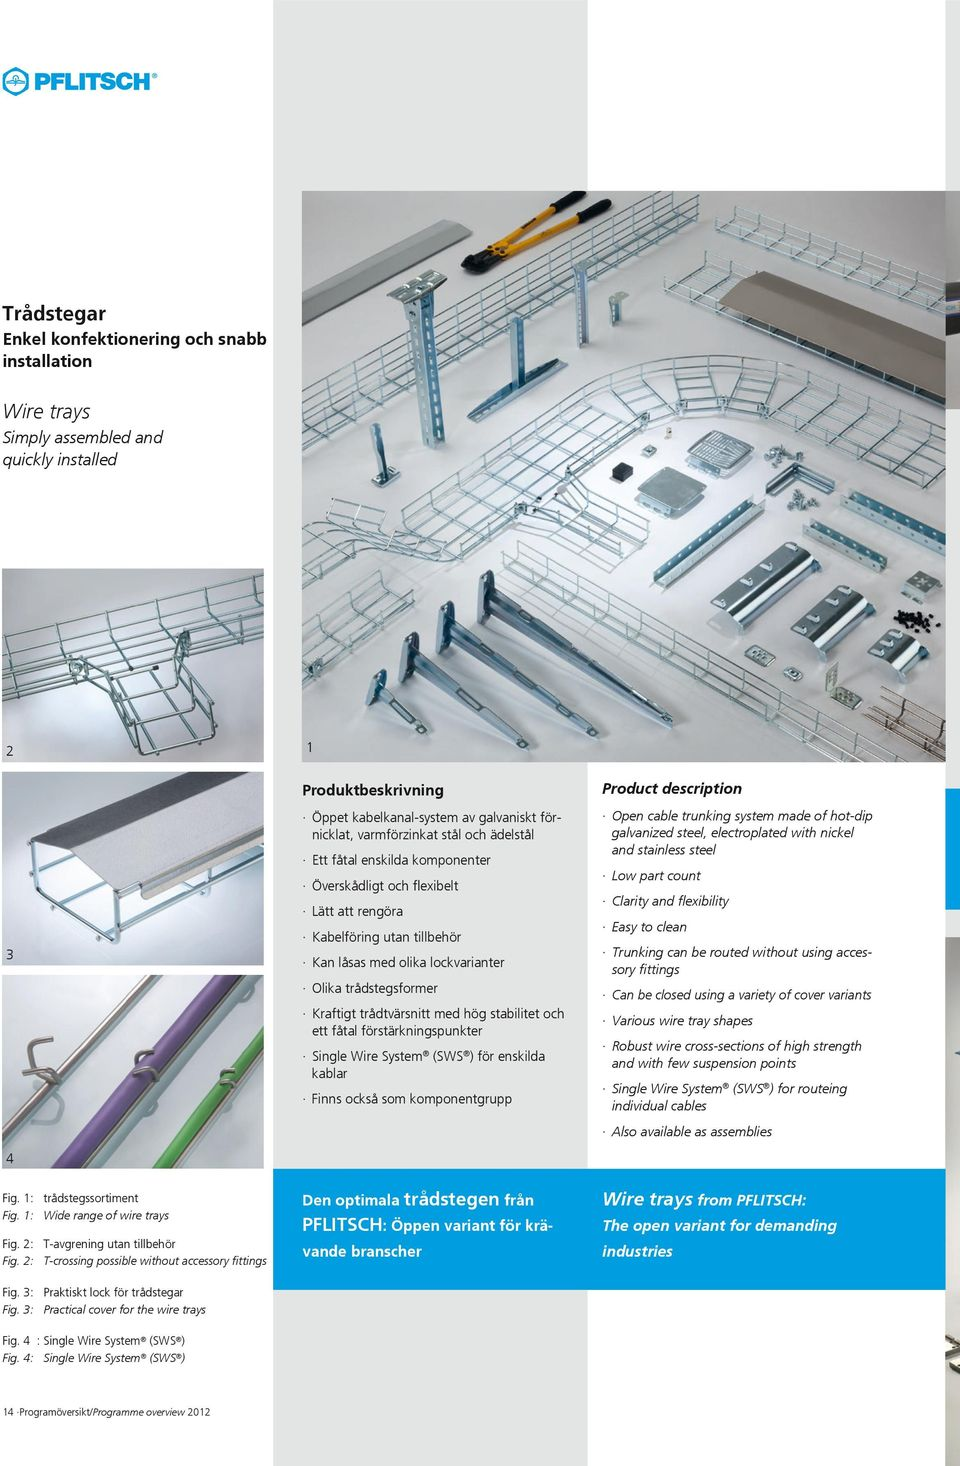 ett fåtal förstärkningspunkter Single Wire System (SWS ) för enskilda kablar Finns också som komponentgrupp Open cable trunking system made of hot-dip galvanized steel, electroplated with nickel and